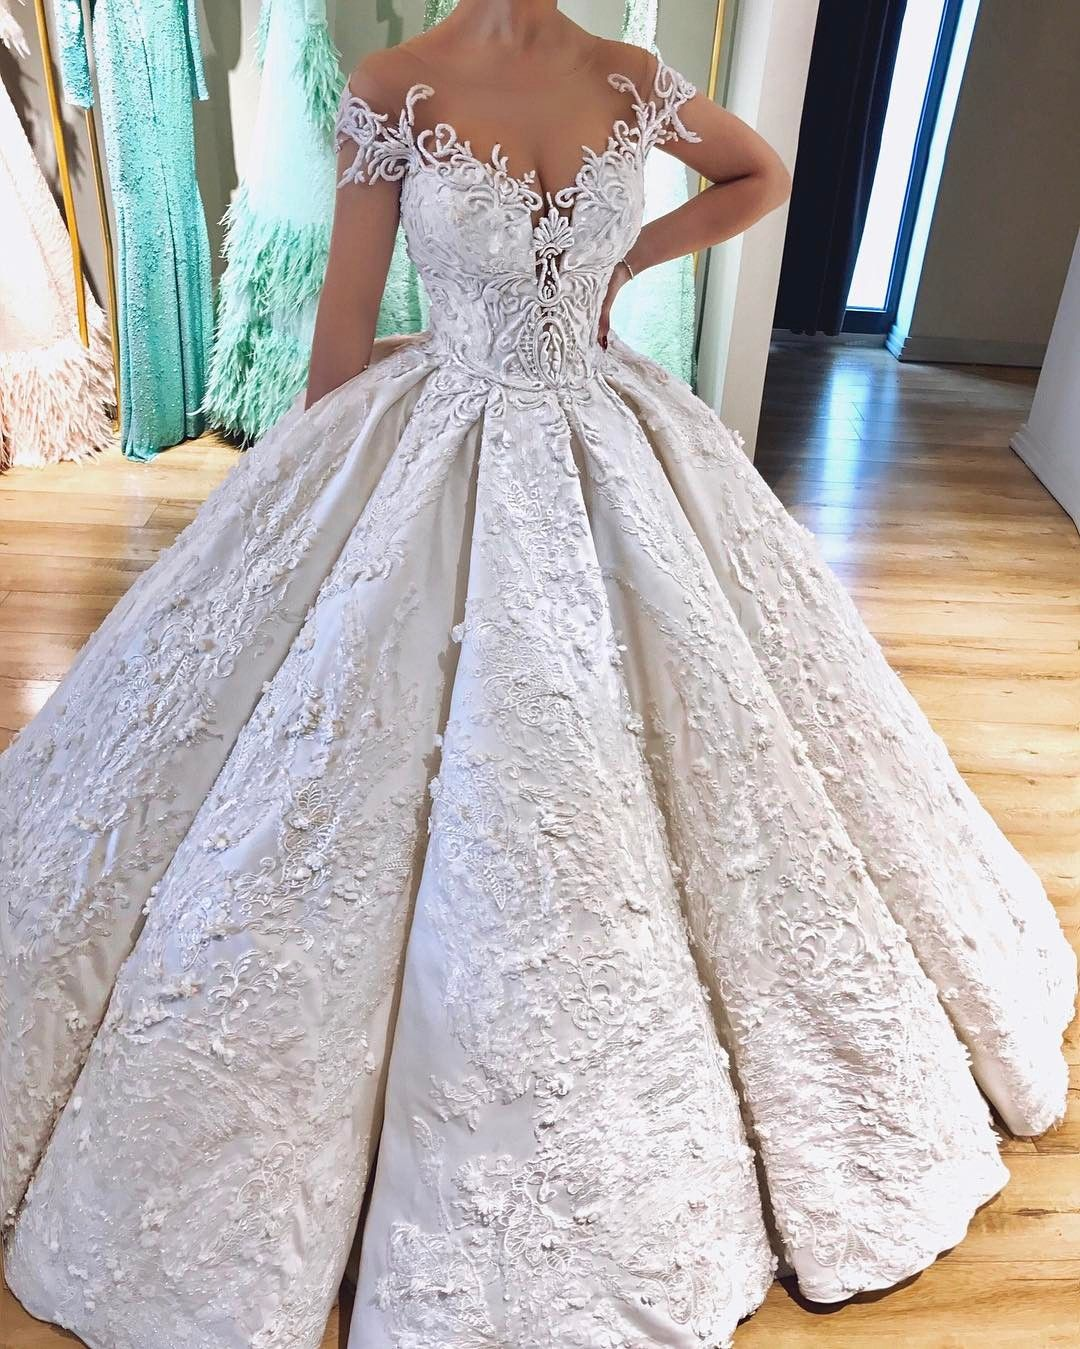 Inspired Wedding Dresses And Recreations Of Couture Designs